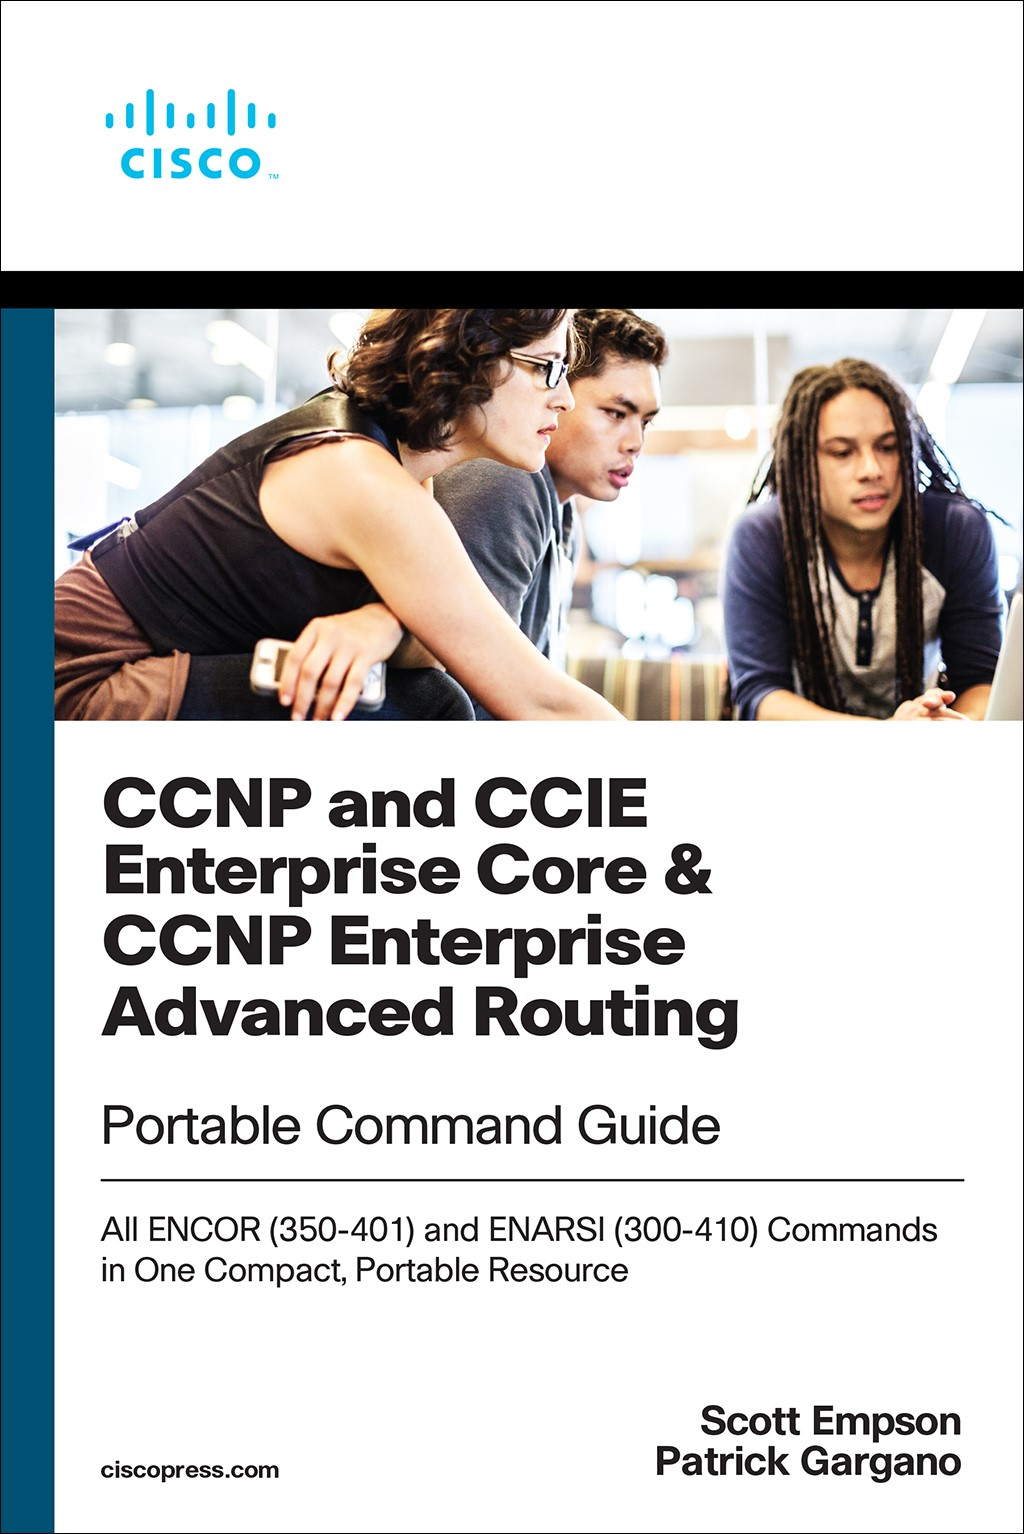 CCNP and CCIE Enterprise Core & CCNP Advanced Routing Portable Command Guide: All ENCOR (350-401) and ENARSI (300-410) Commands in One Compact, Portable Resource